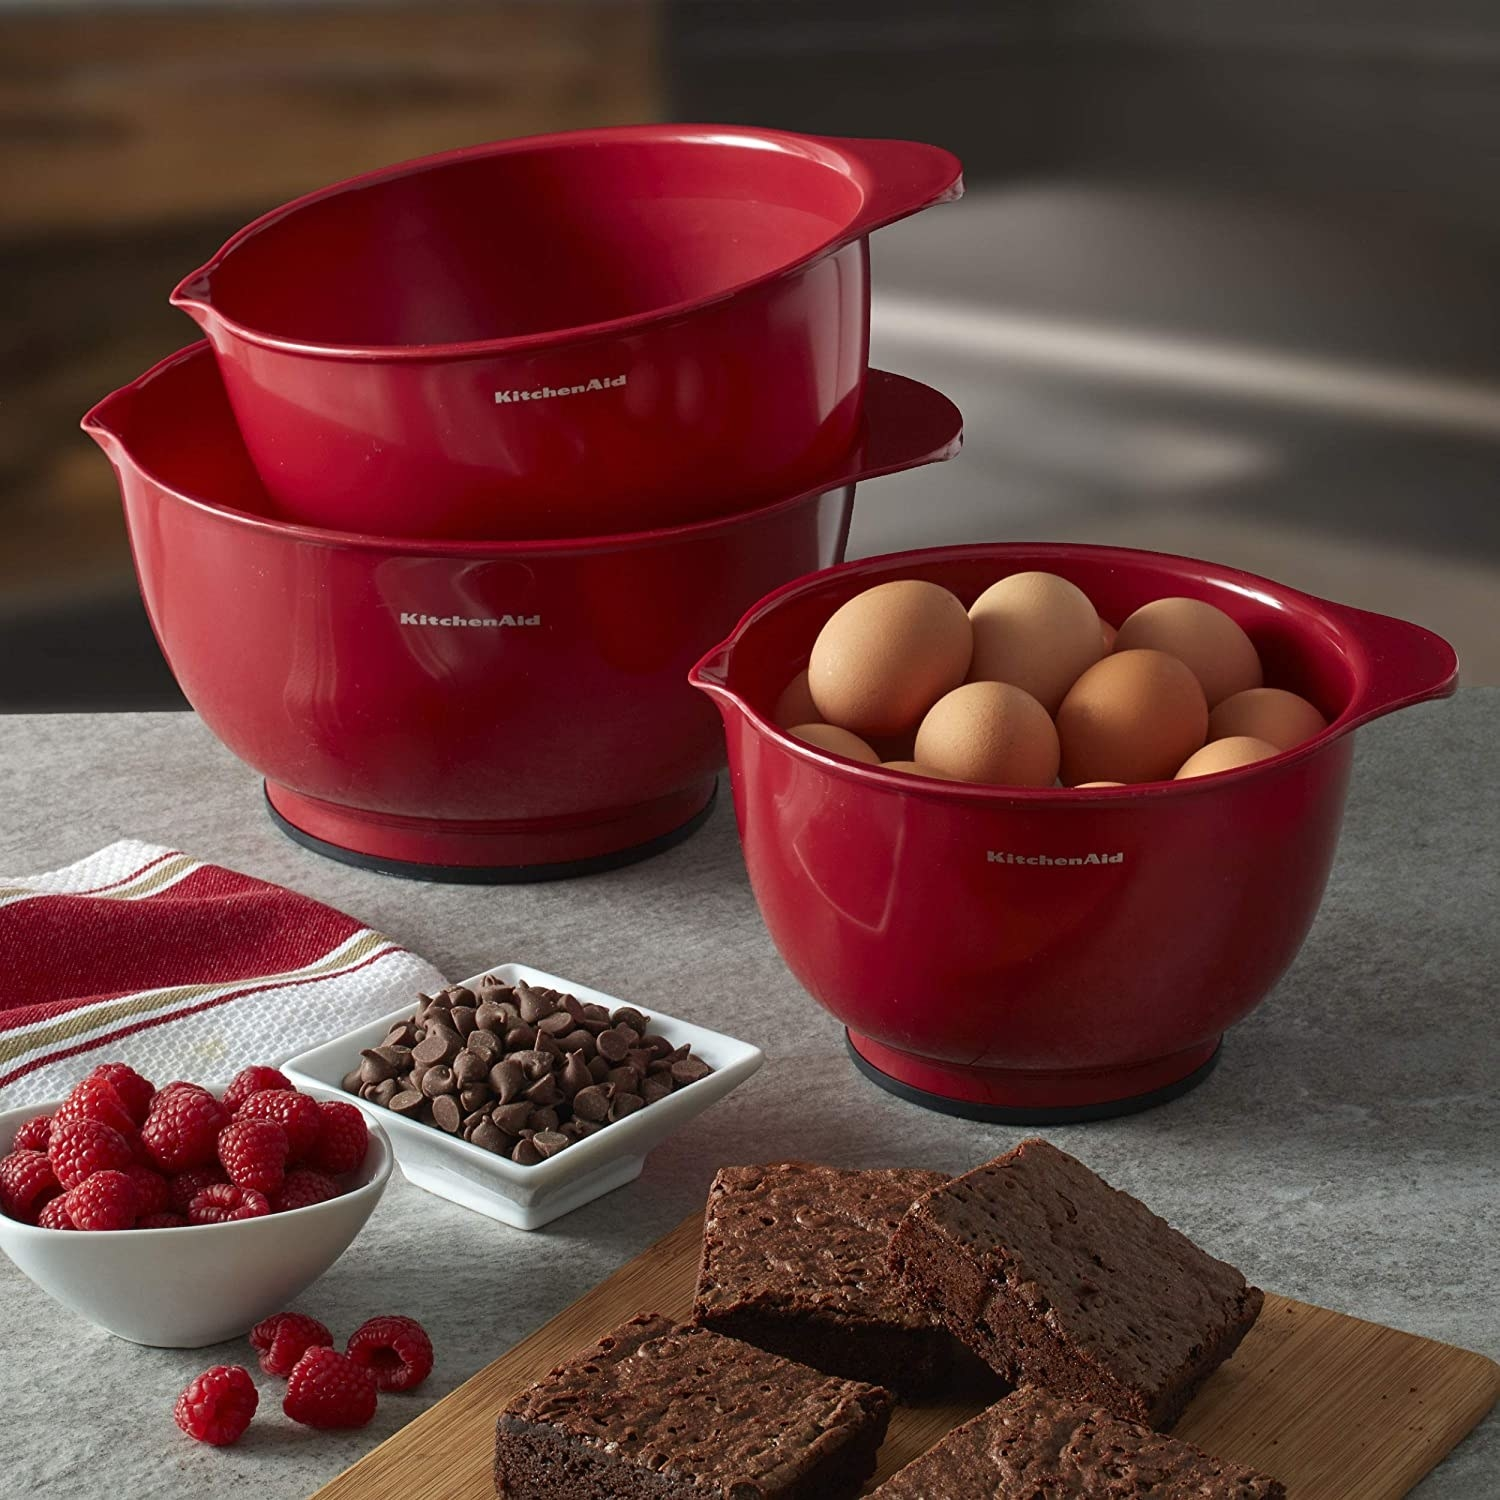 The red bowls in three different sizes